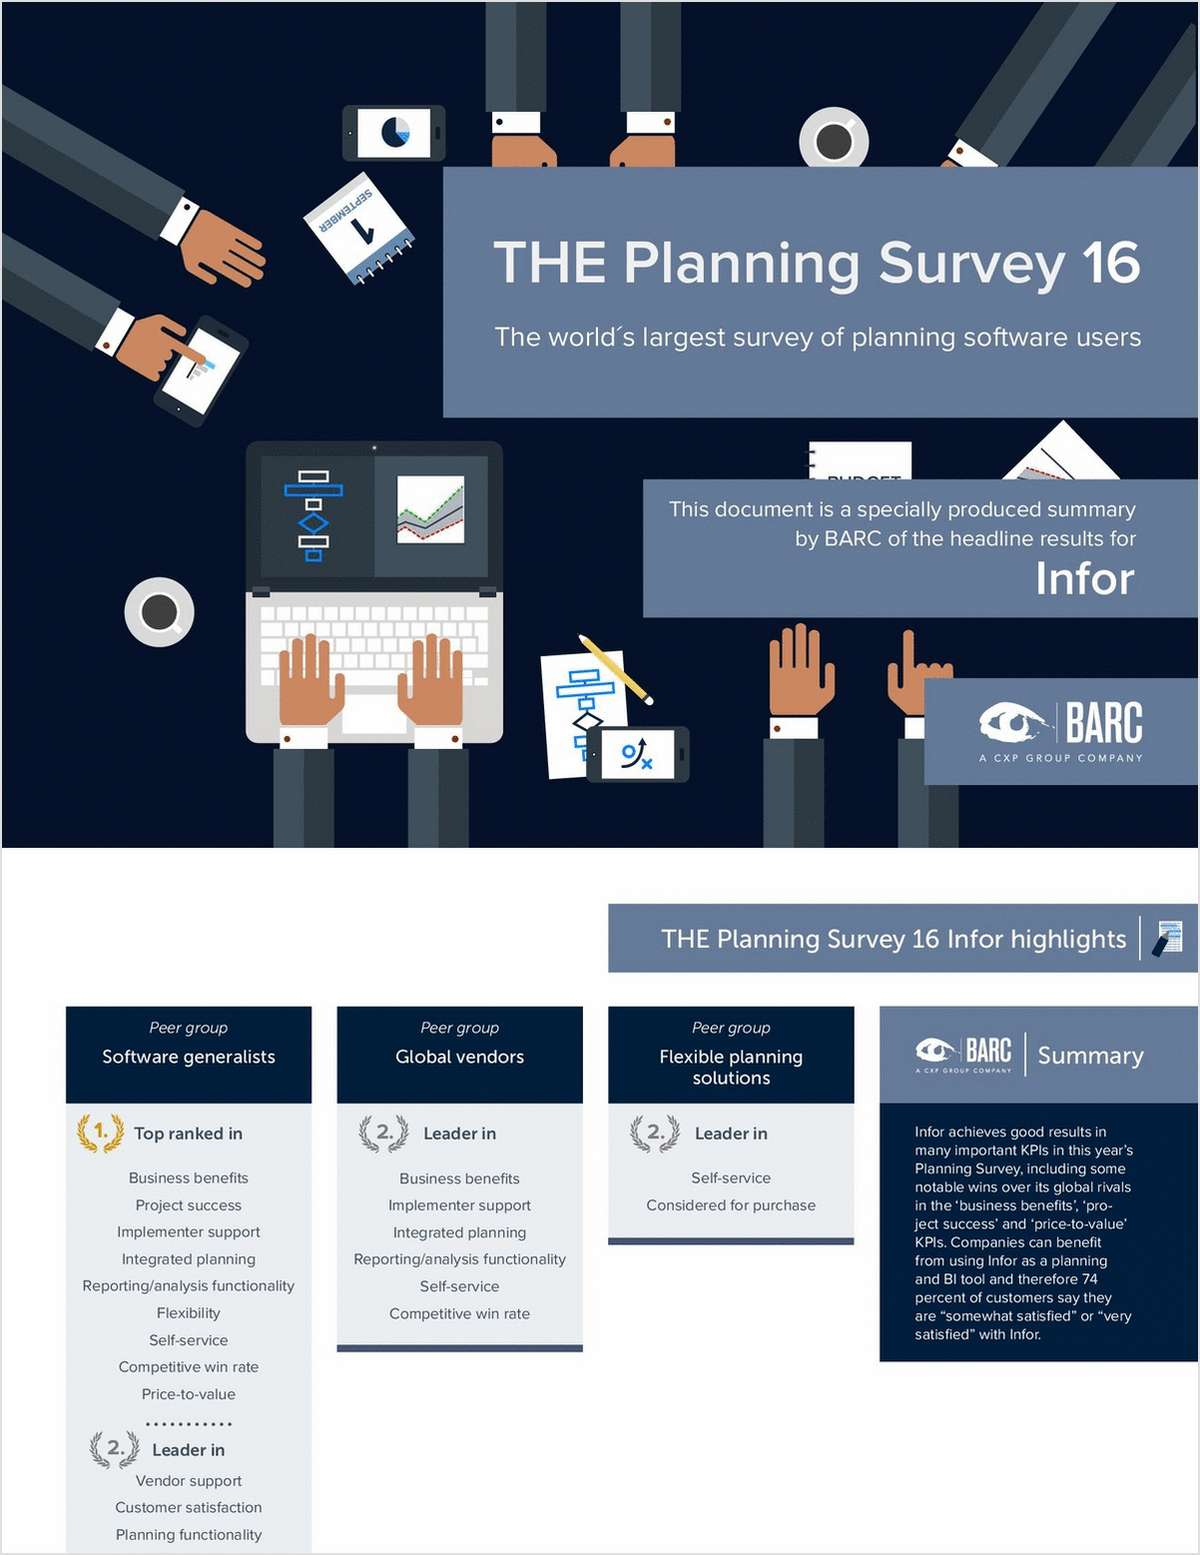 Infor in THE Planning Survey 16, BARC